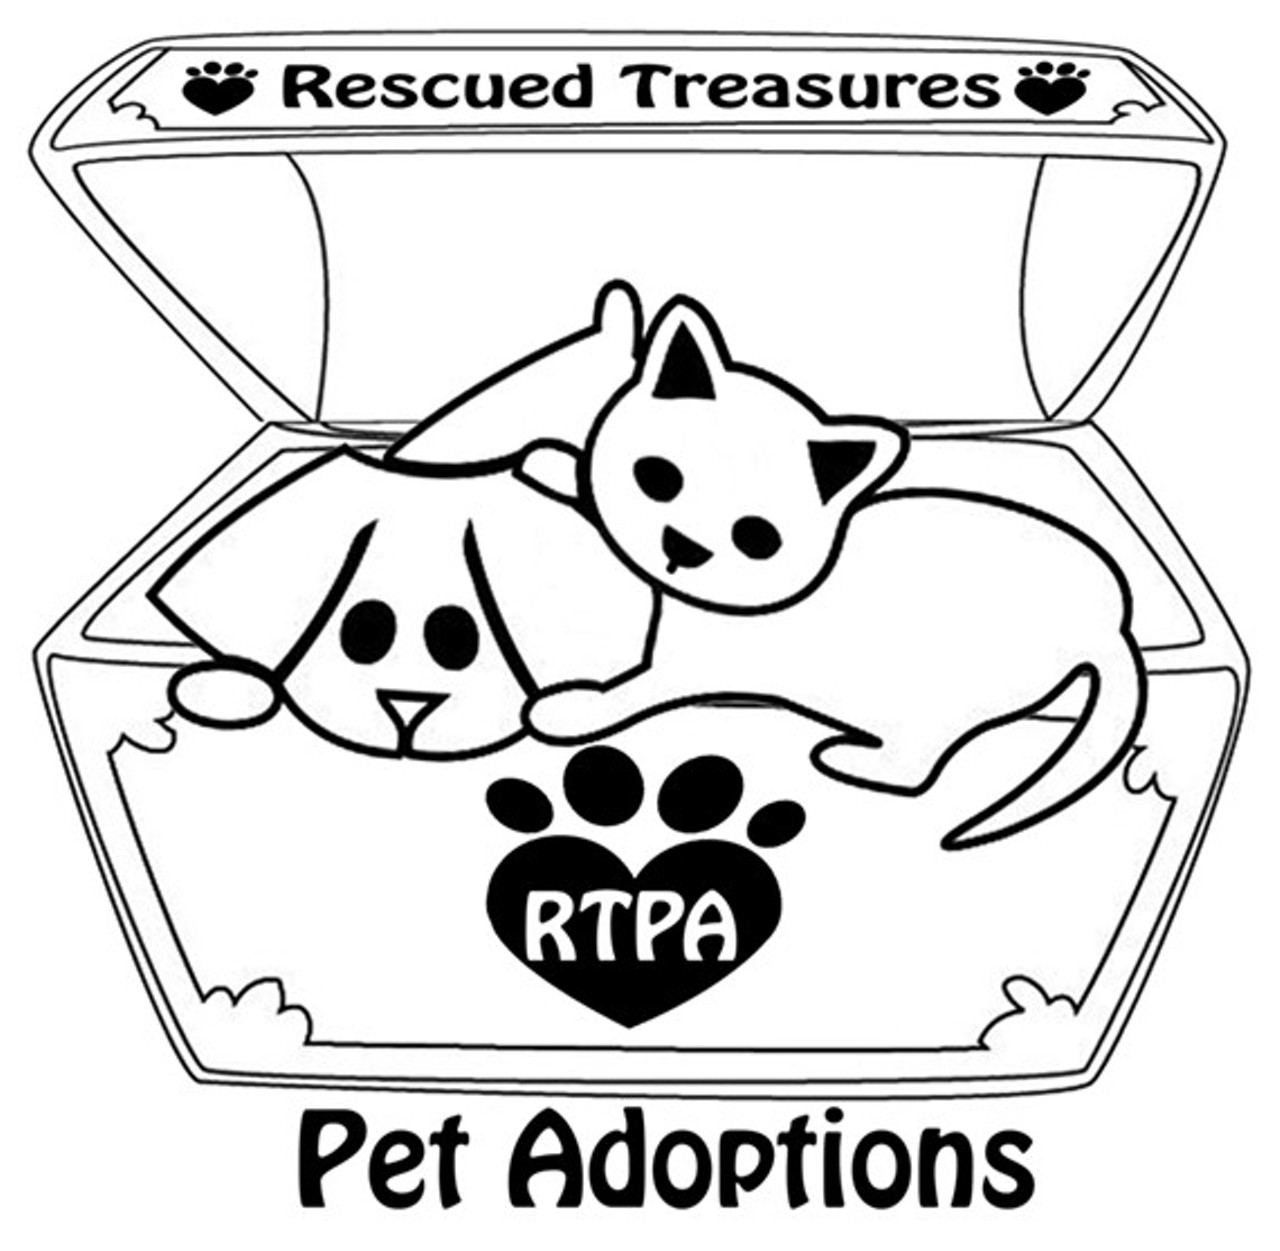 Rescued Treasures Pet Adoptions | Rochester City Newspaper